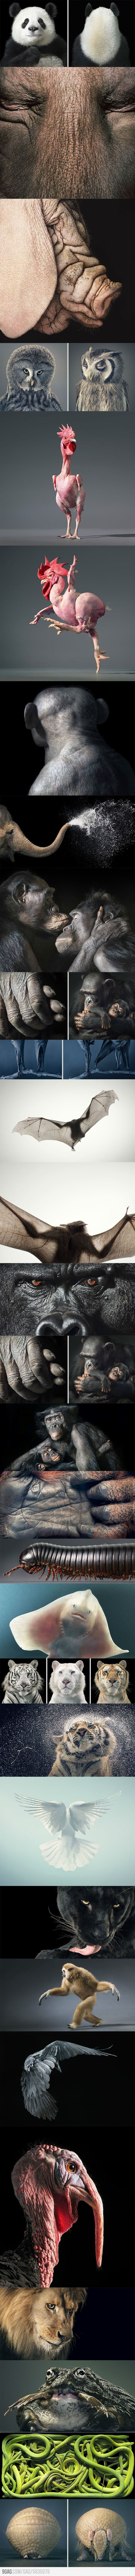 Amazing Animal Portraits by Tim Flach. I went to see him discuss these. The second photo isn't what you think it is!